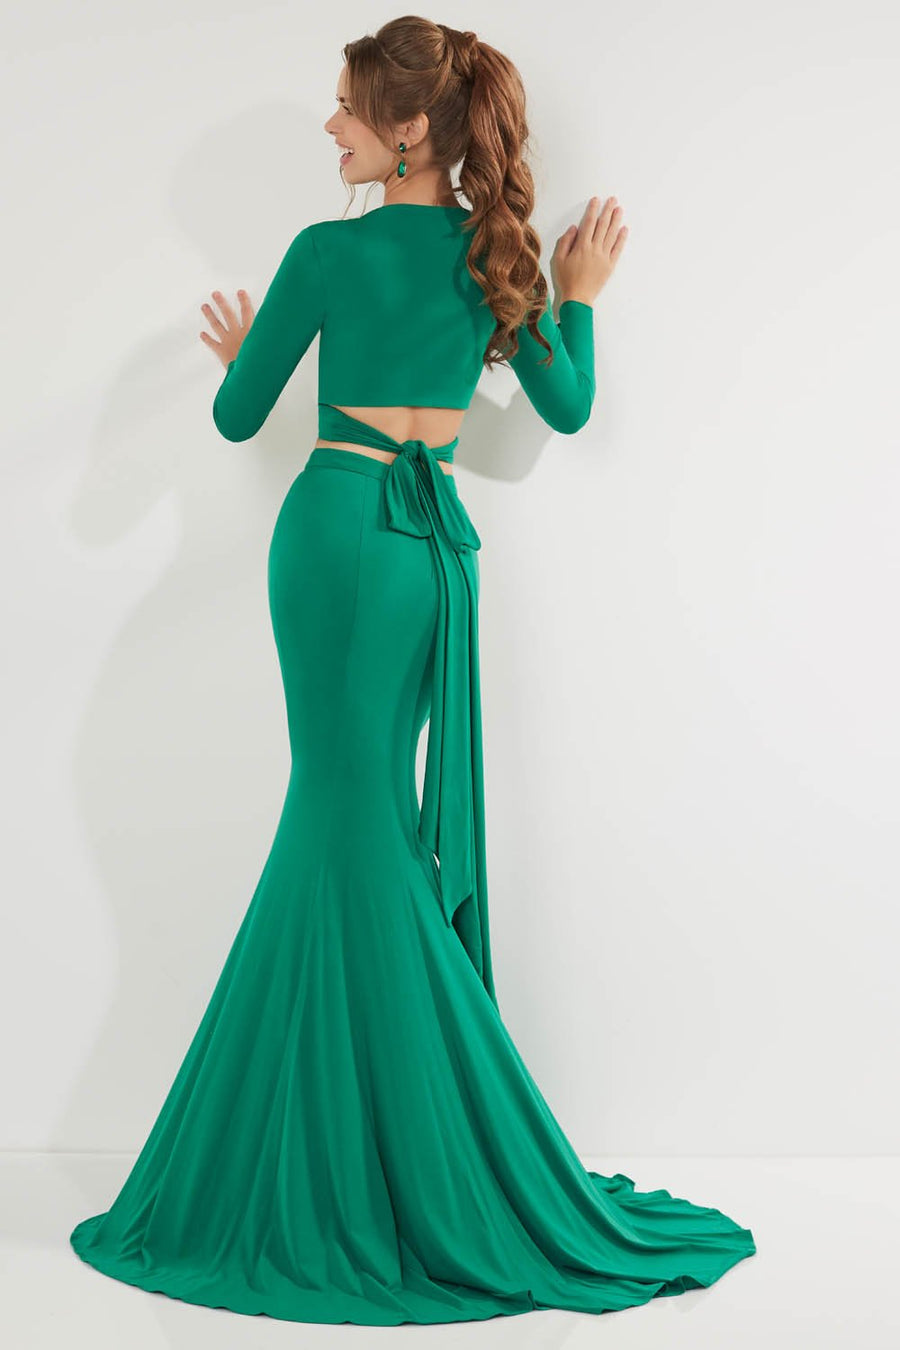 Studio 17 12759 prom dress images.  Studio 17 12759 is available in these colors: Black, Emerald, Wine.